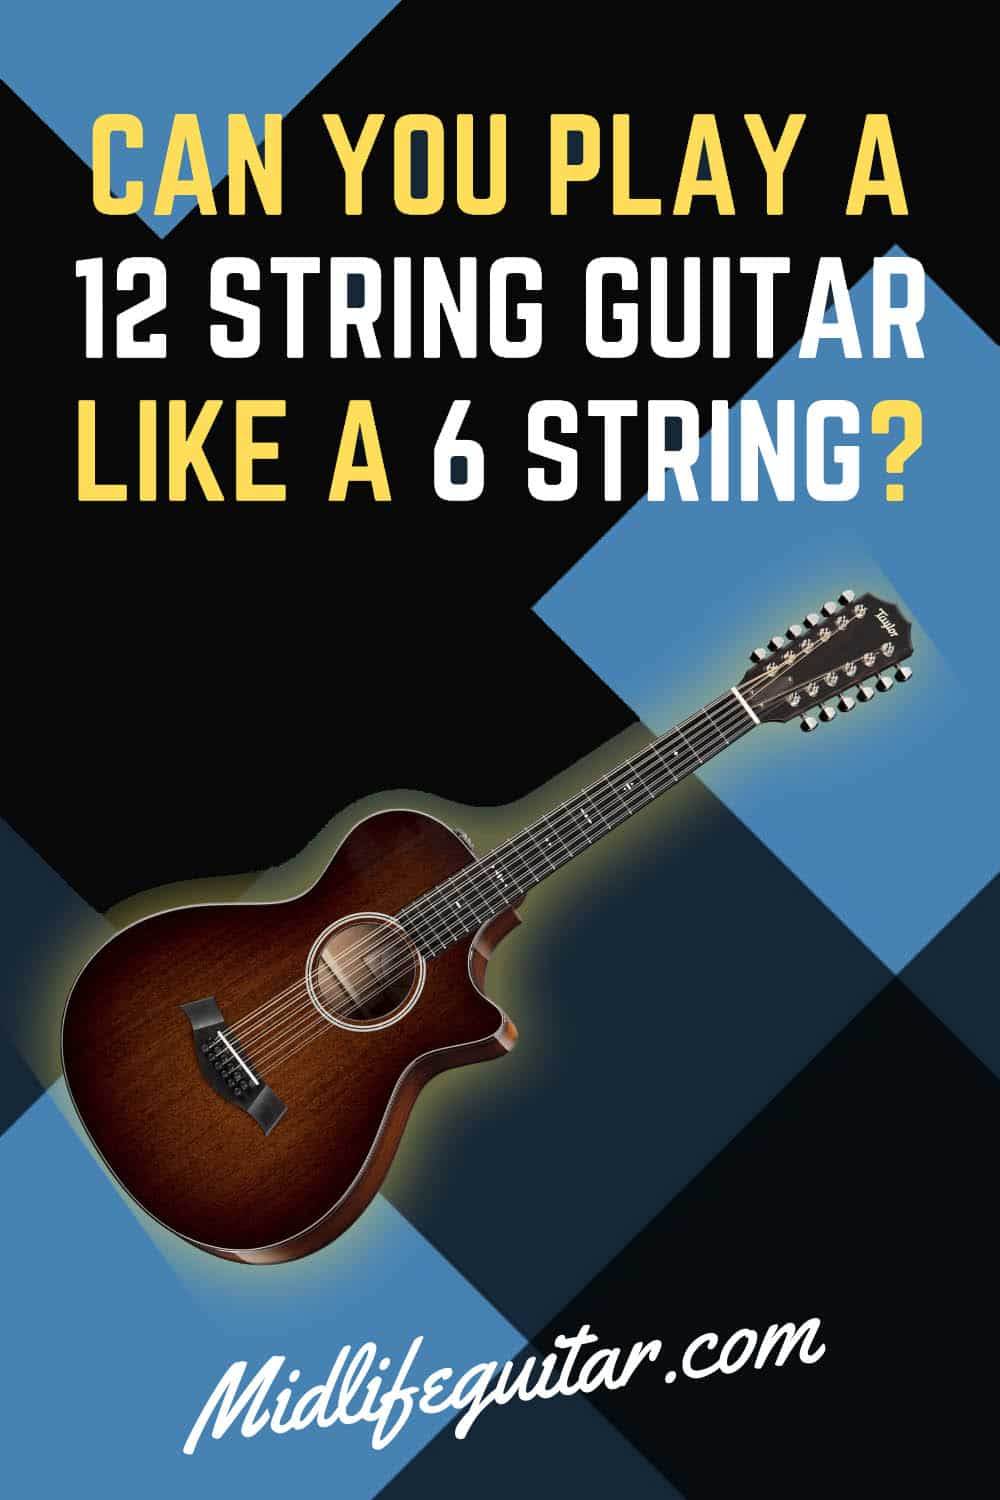 Can You Play A 12 String Guitar Like A 6 String